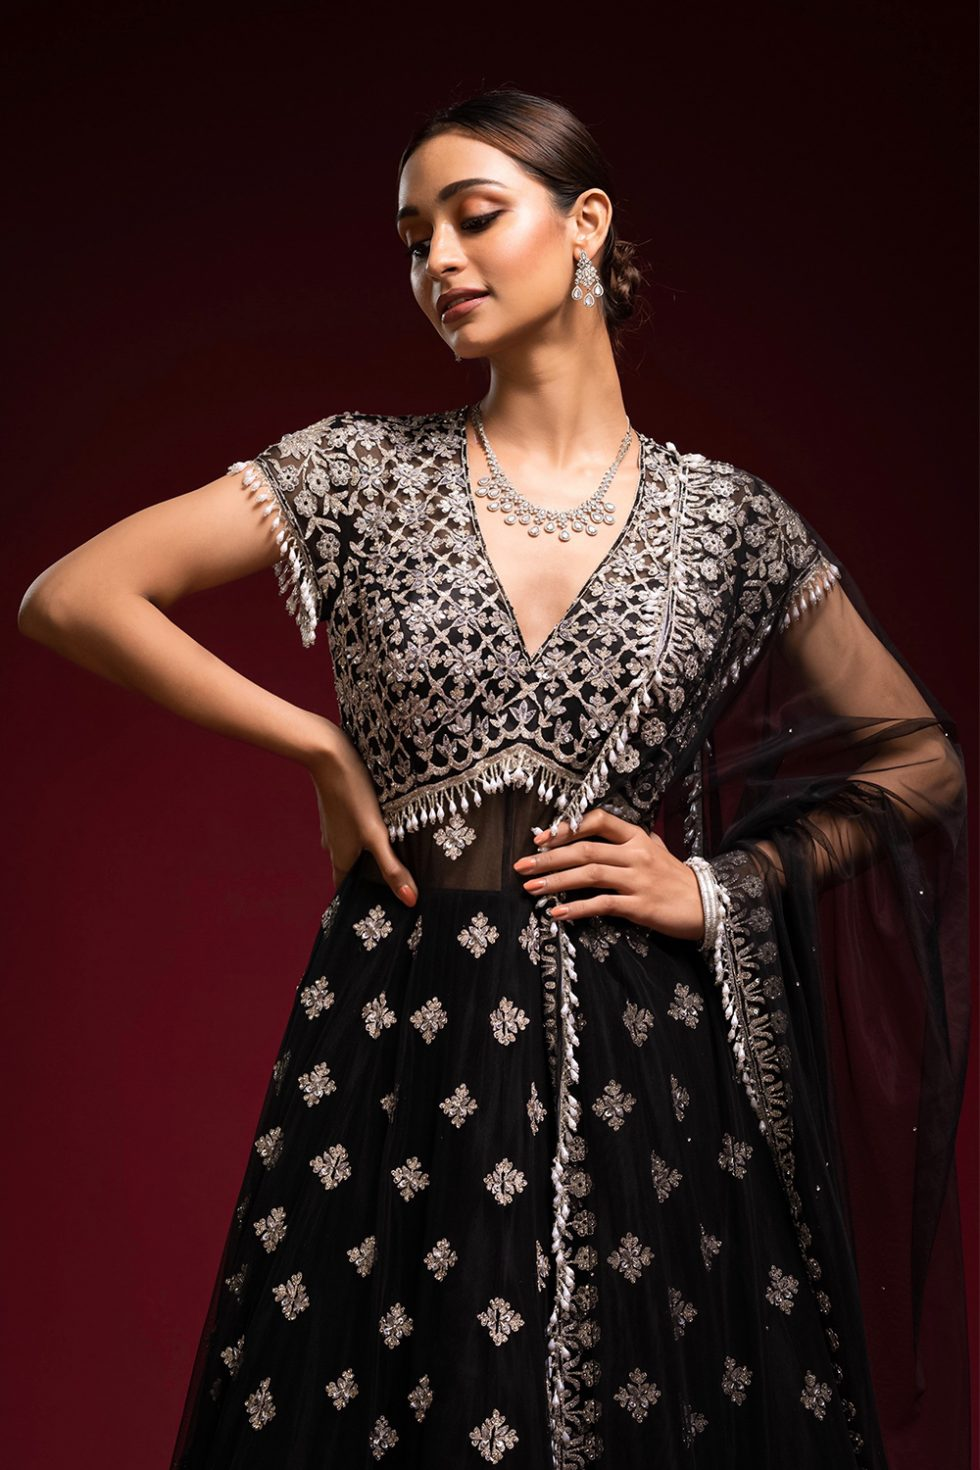 Raven black gown set with silver embroidery paired with a matching dupatta, silver embellishments and pearl tassels.